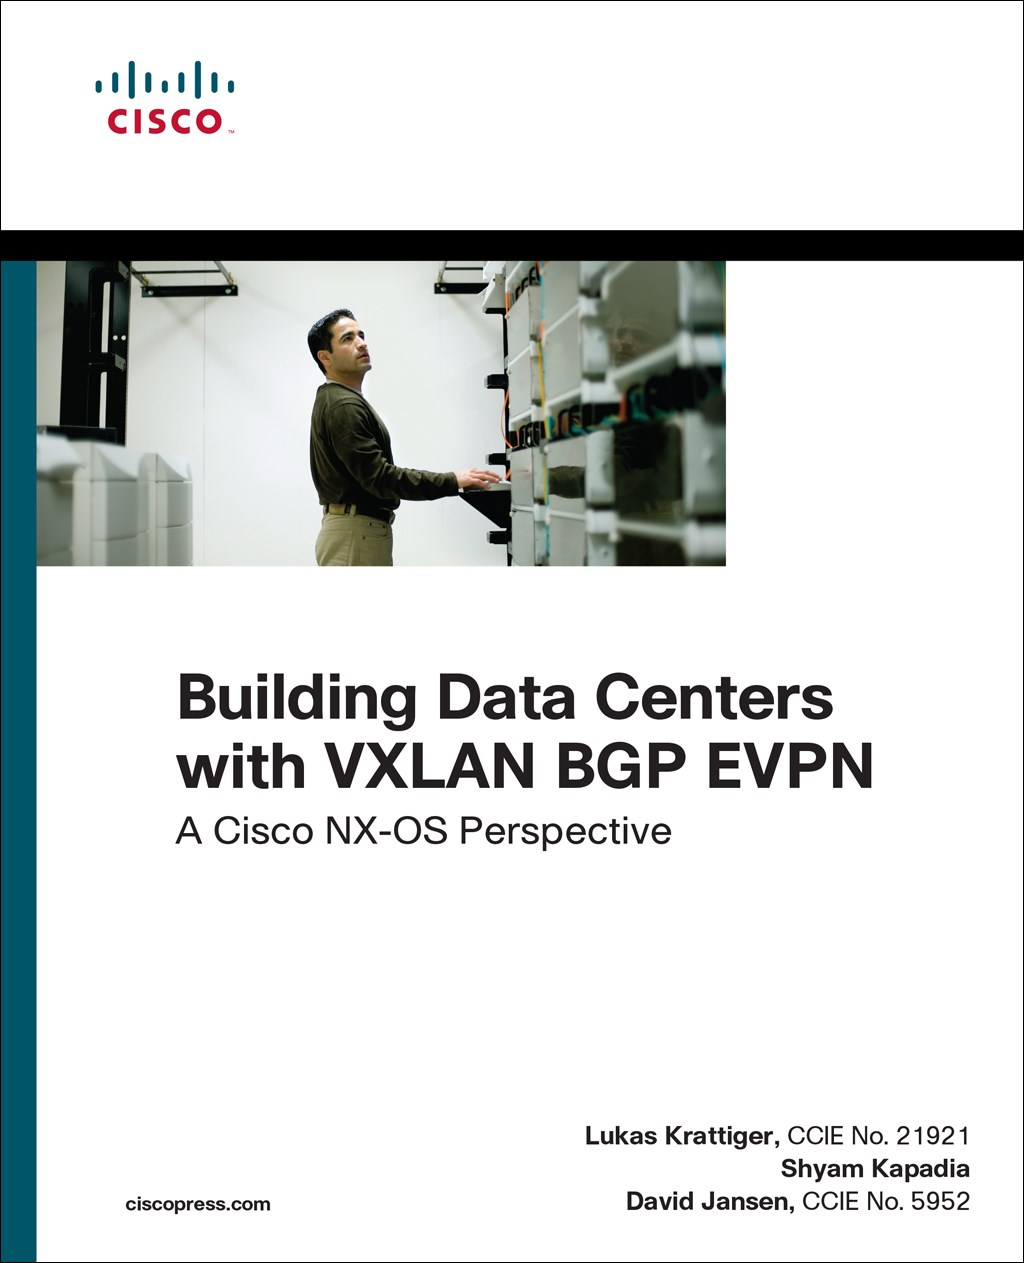 Building Data Centers with VXLAN BGP EVPN: A Cisco NX-OS Perspective